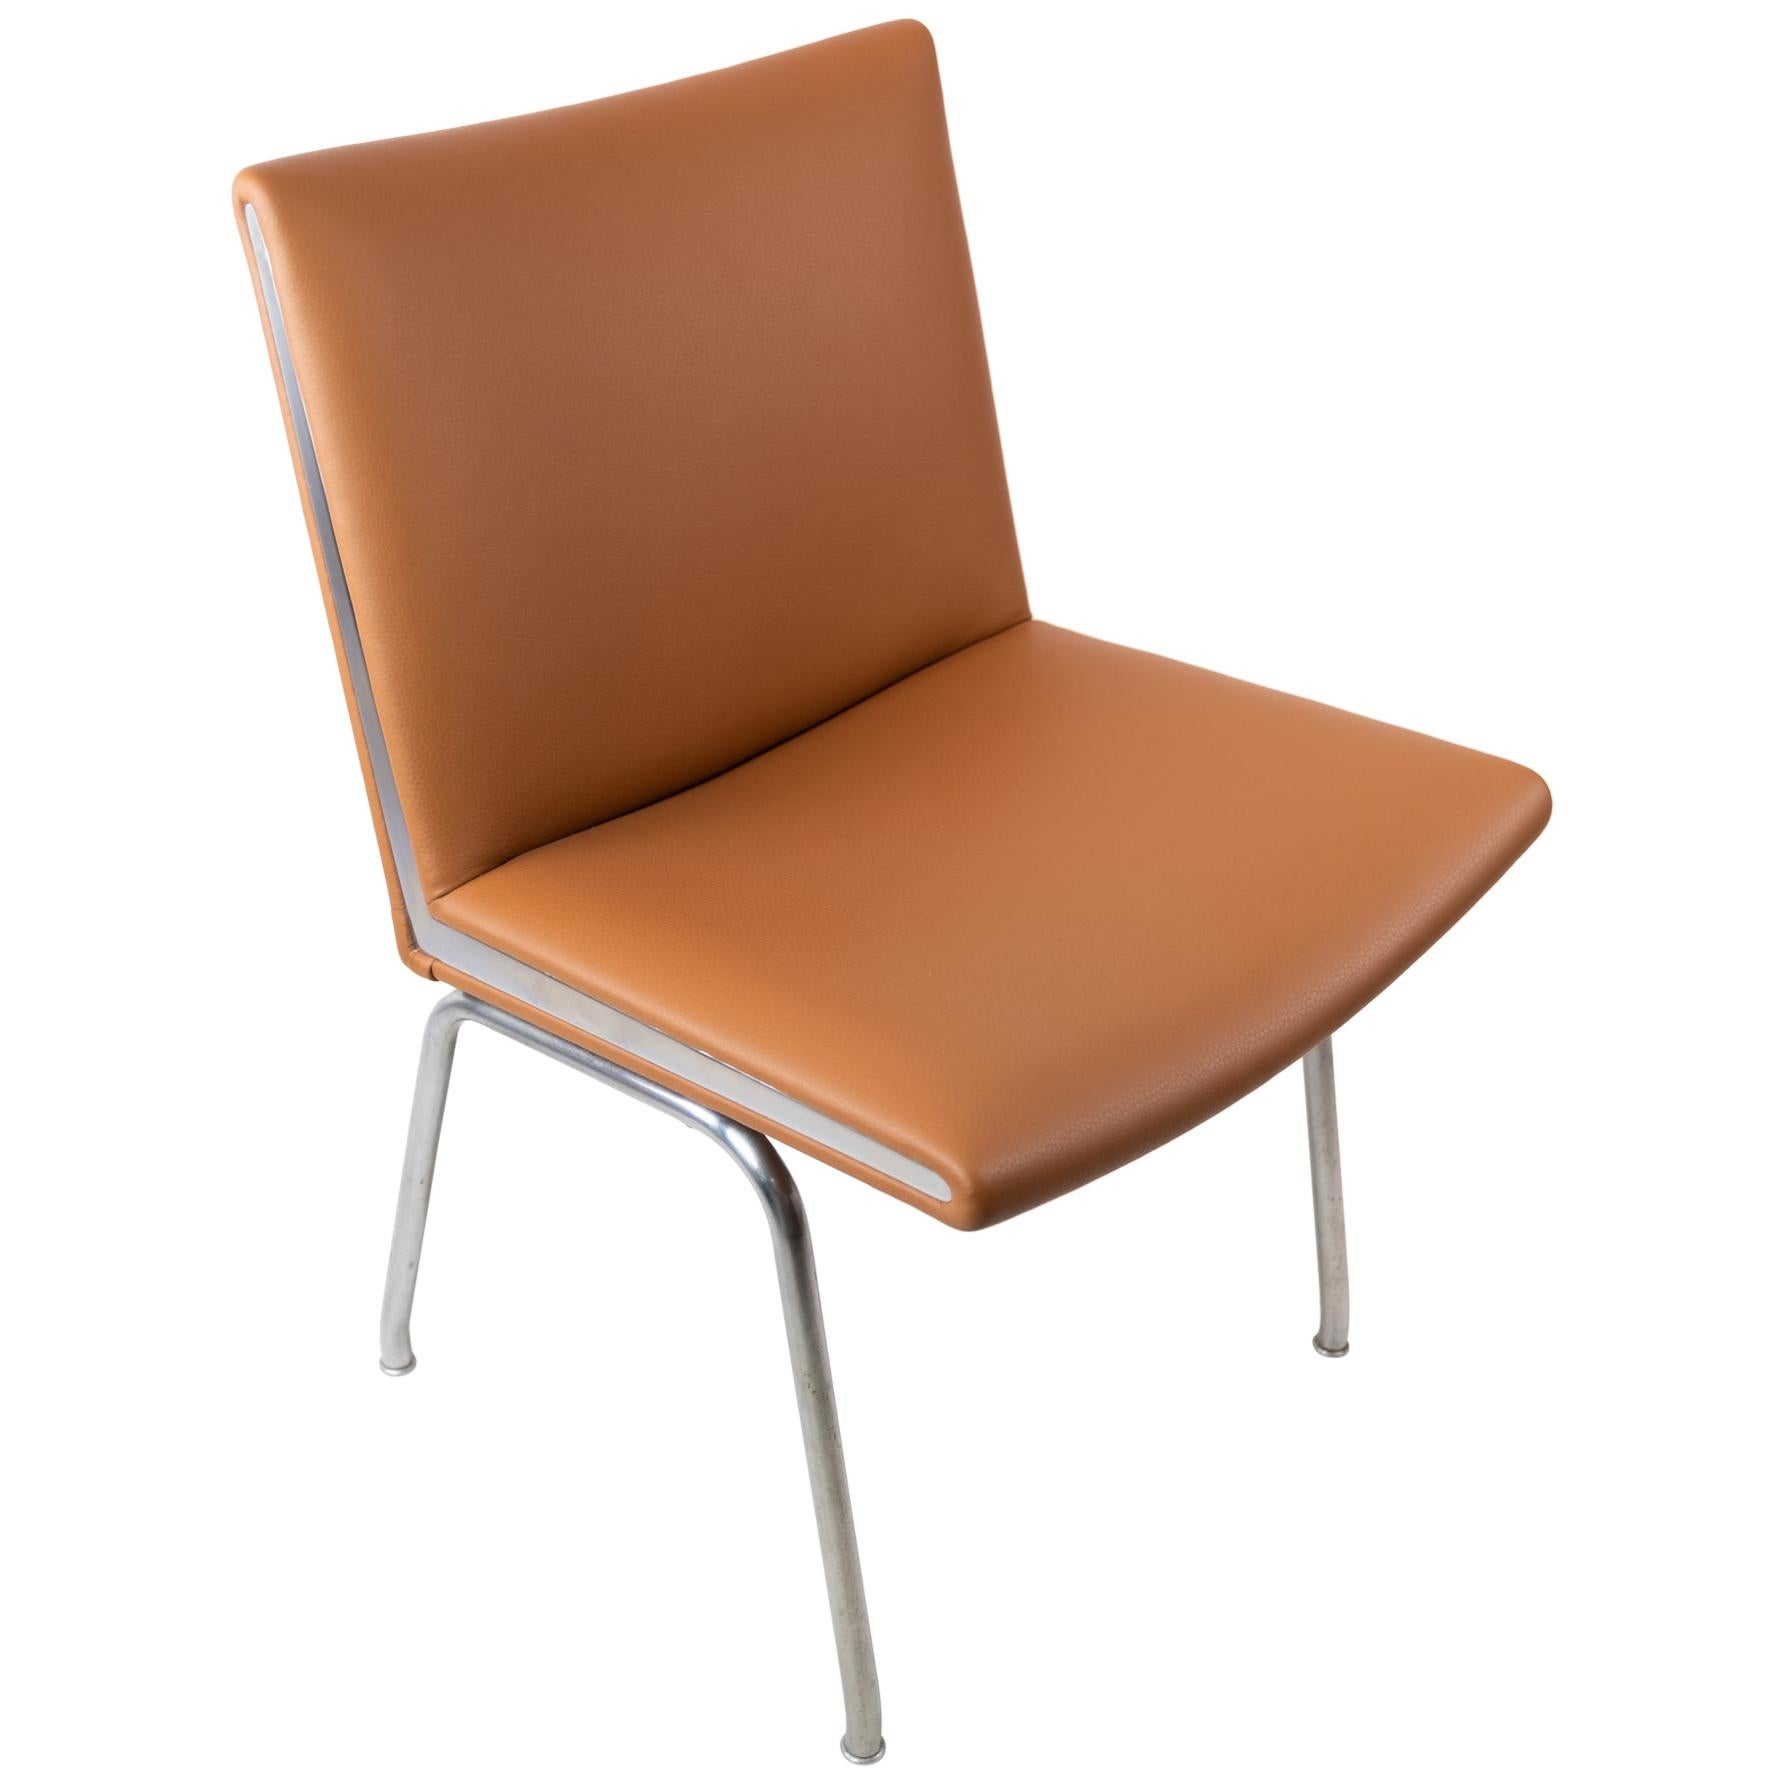 The Airport-Chair, Model AP37, Designed by Hans J. Wegner in the 1950s